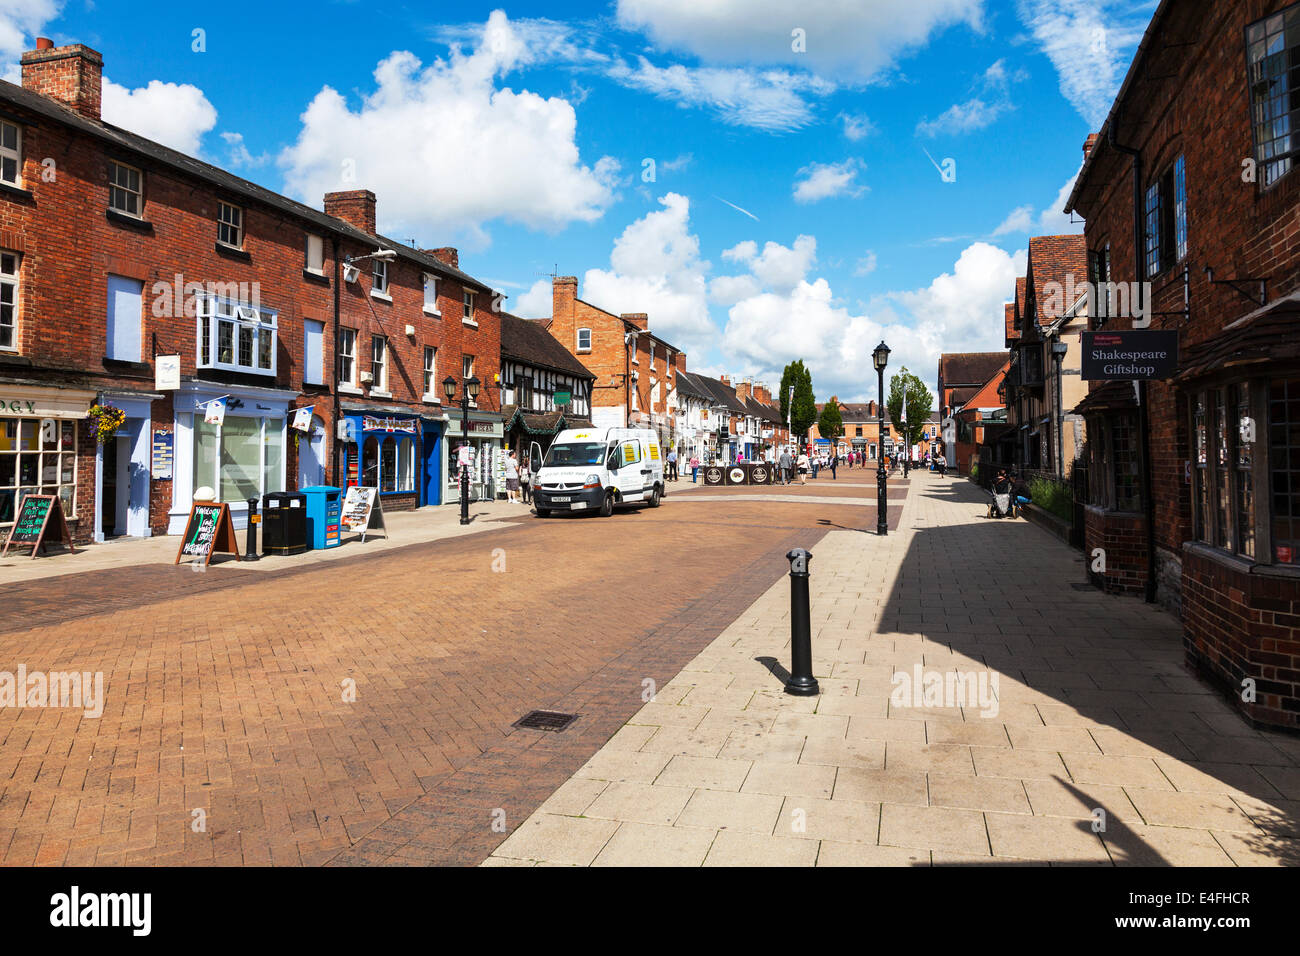 Stratford Upon Avon high Street town centre shops shoppers tourists Cotswolds UK England Stock Photo